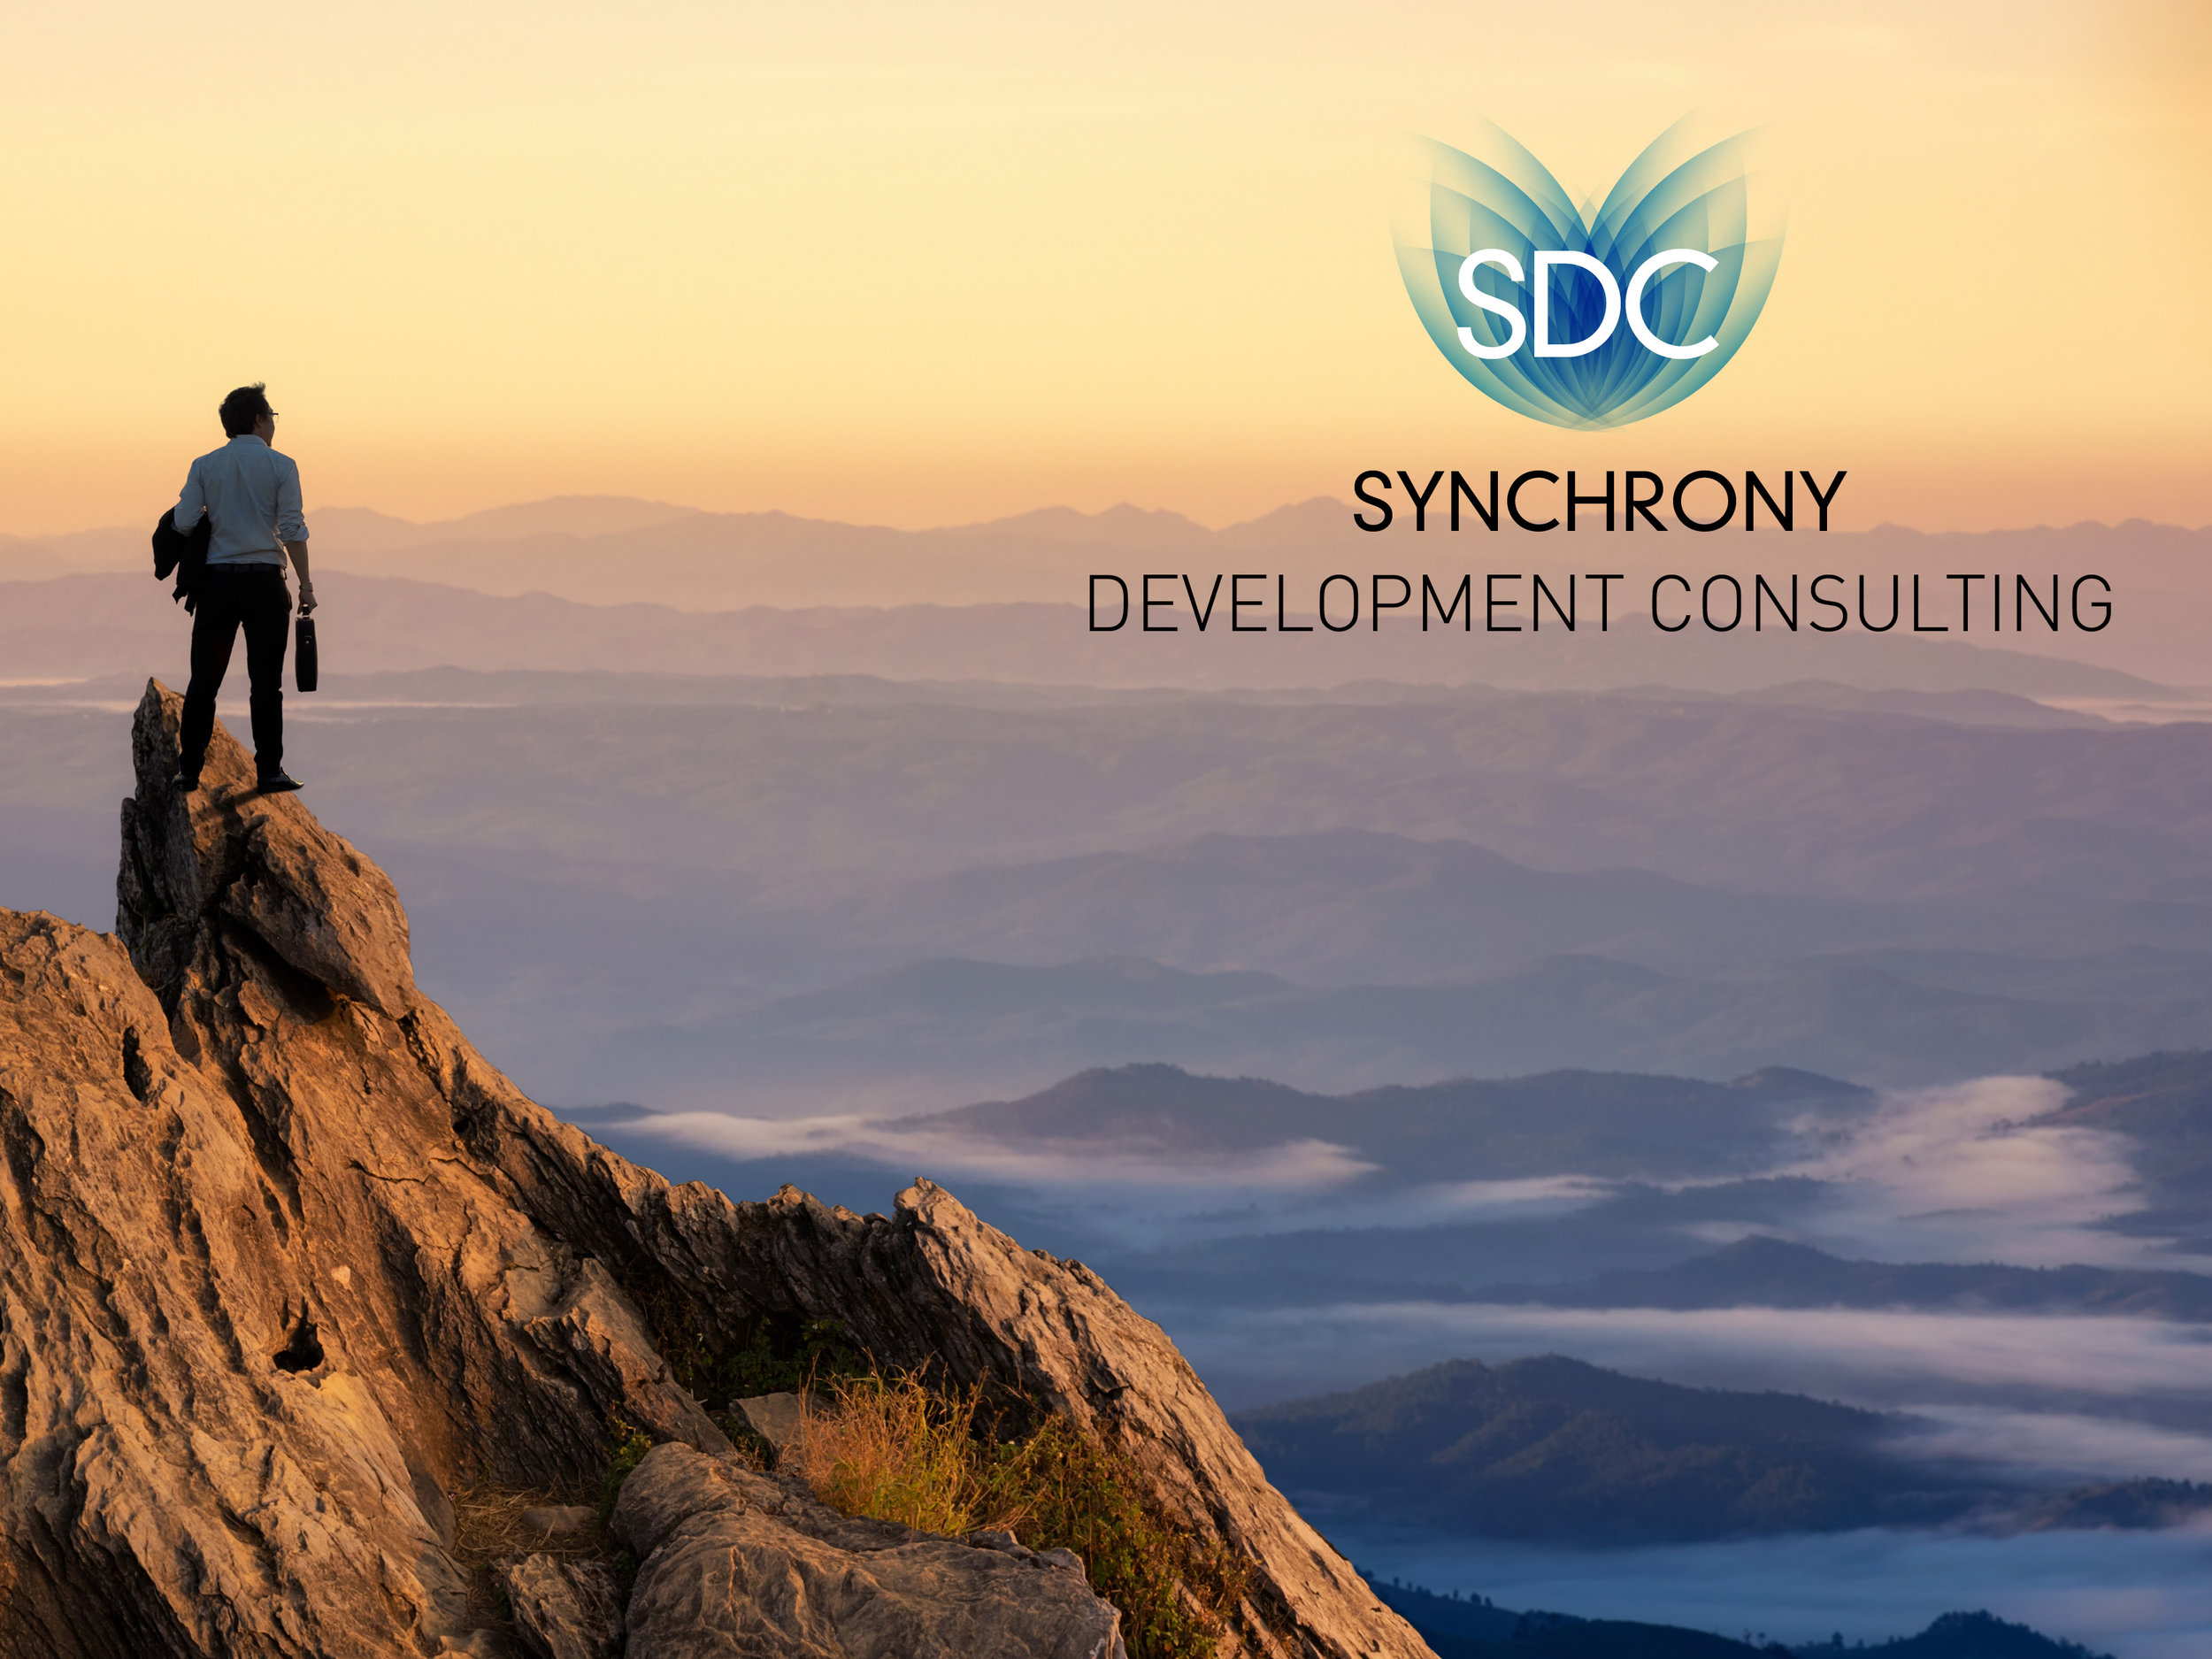 Synchrony Development COnsulting